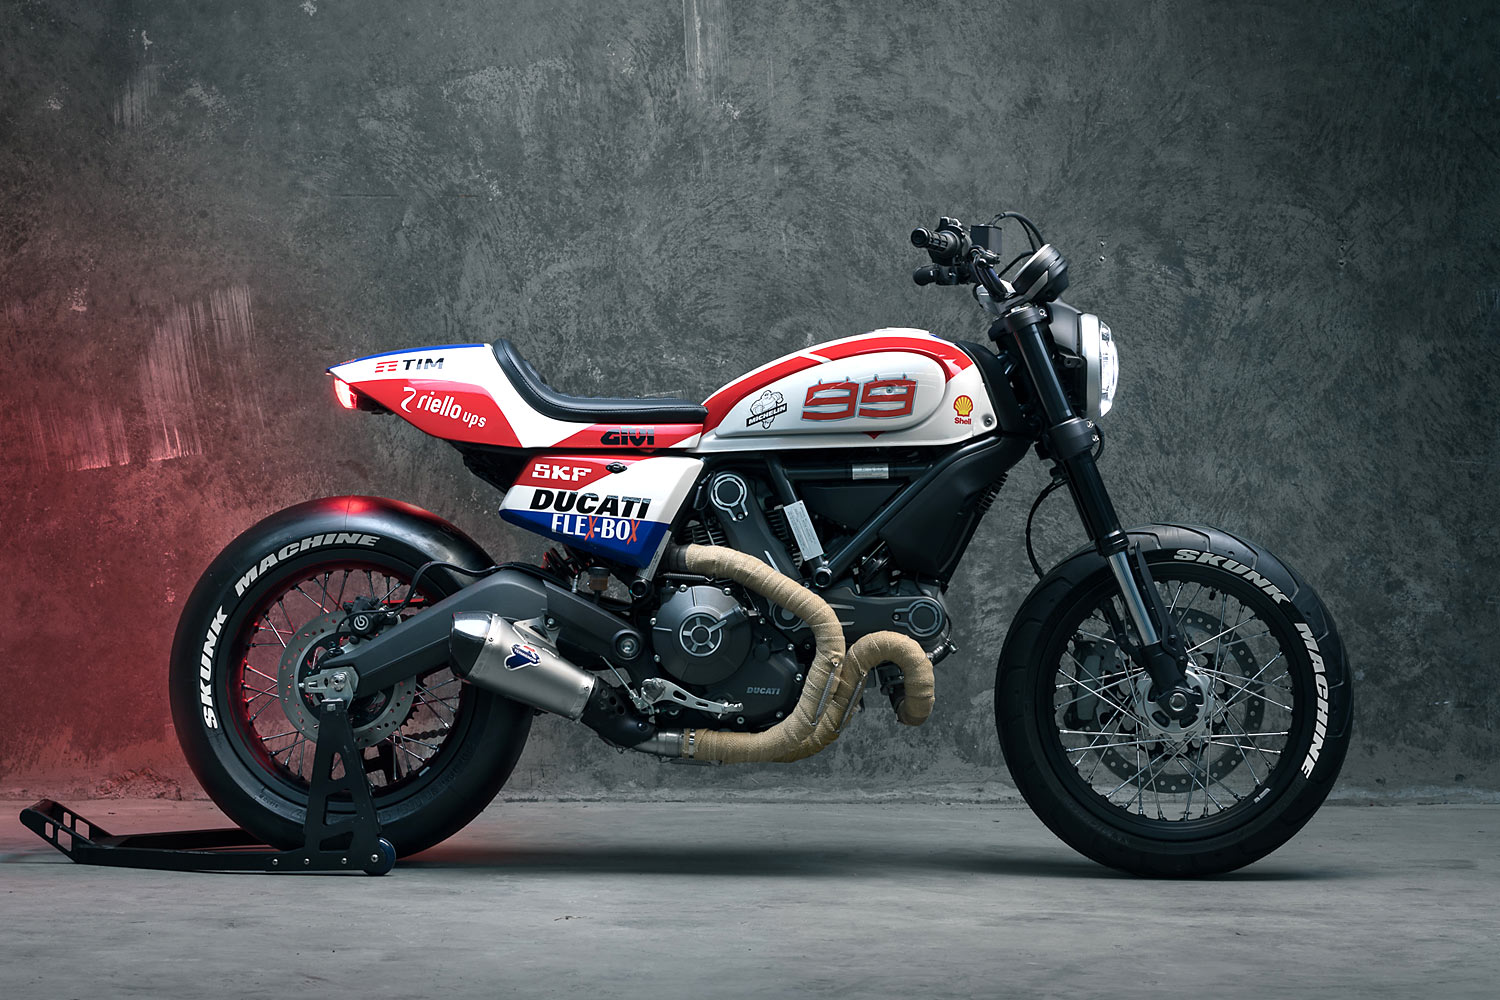 Is Ducati Scrambler A Good Bike